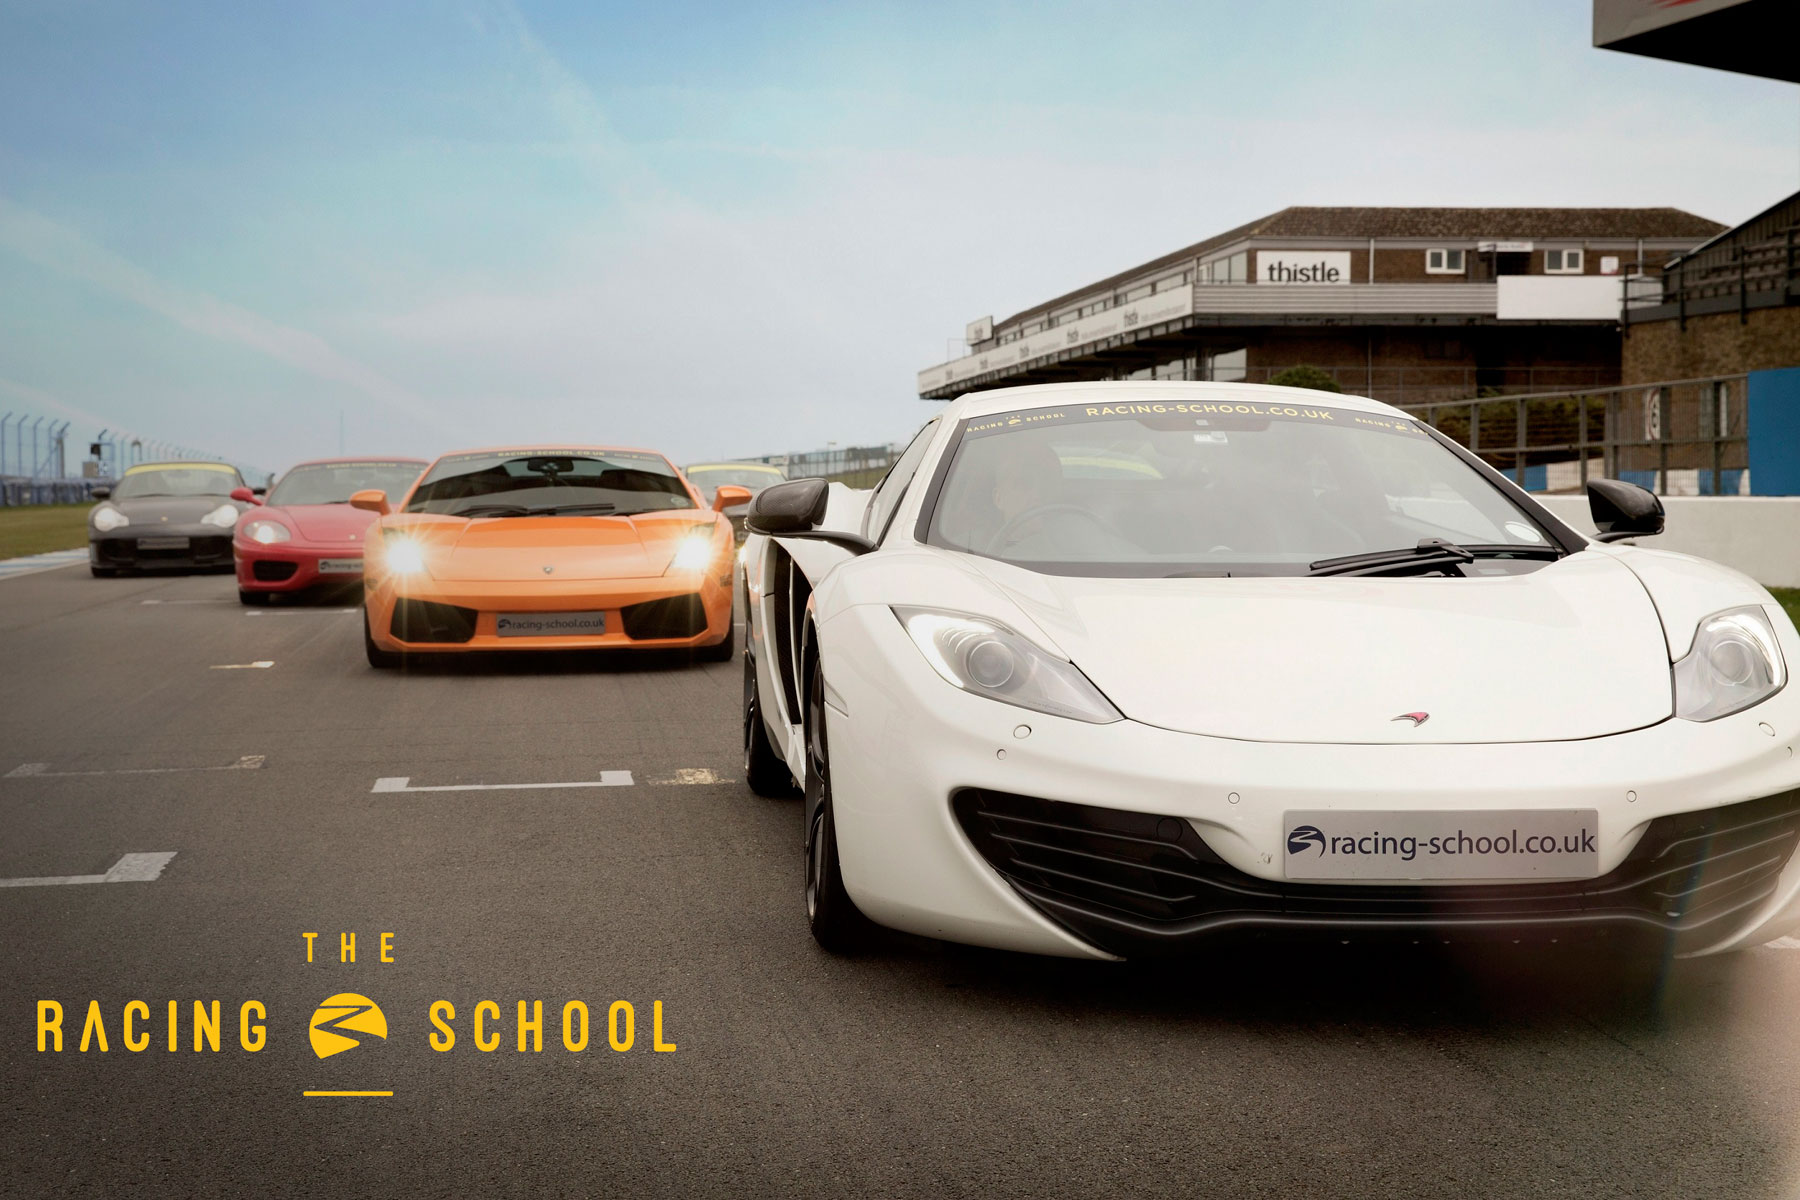 The Racing School experience: from £79